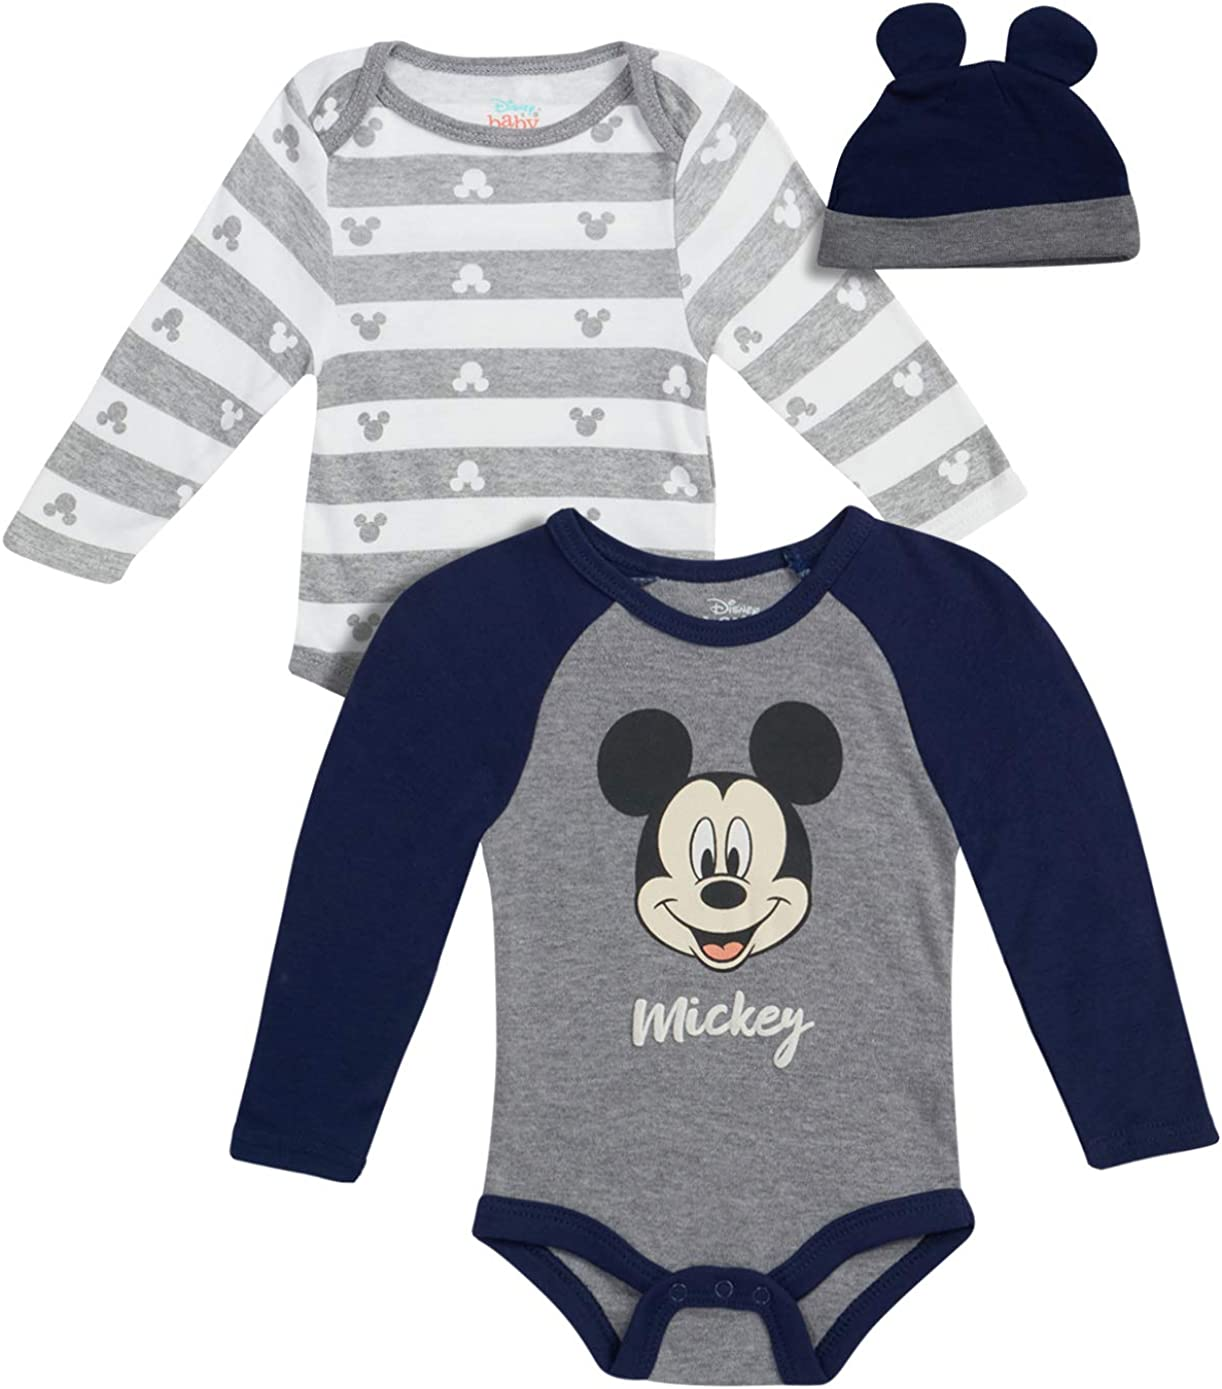 Disney Baby Boys Newborn Winter Bodysuits (2 Pack) with Hat - Mickey Mouse, Toy Story, Lion King, Winnie The Pooh